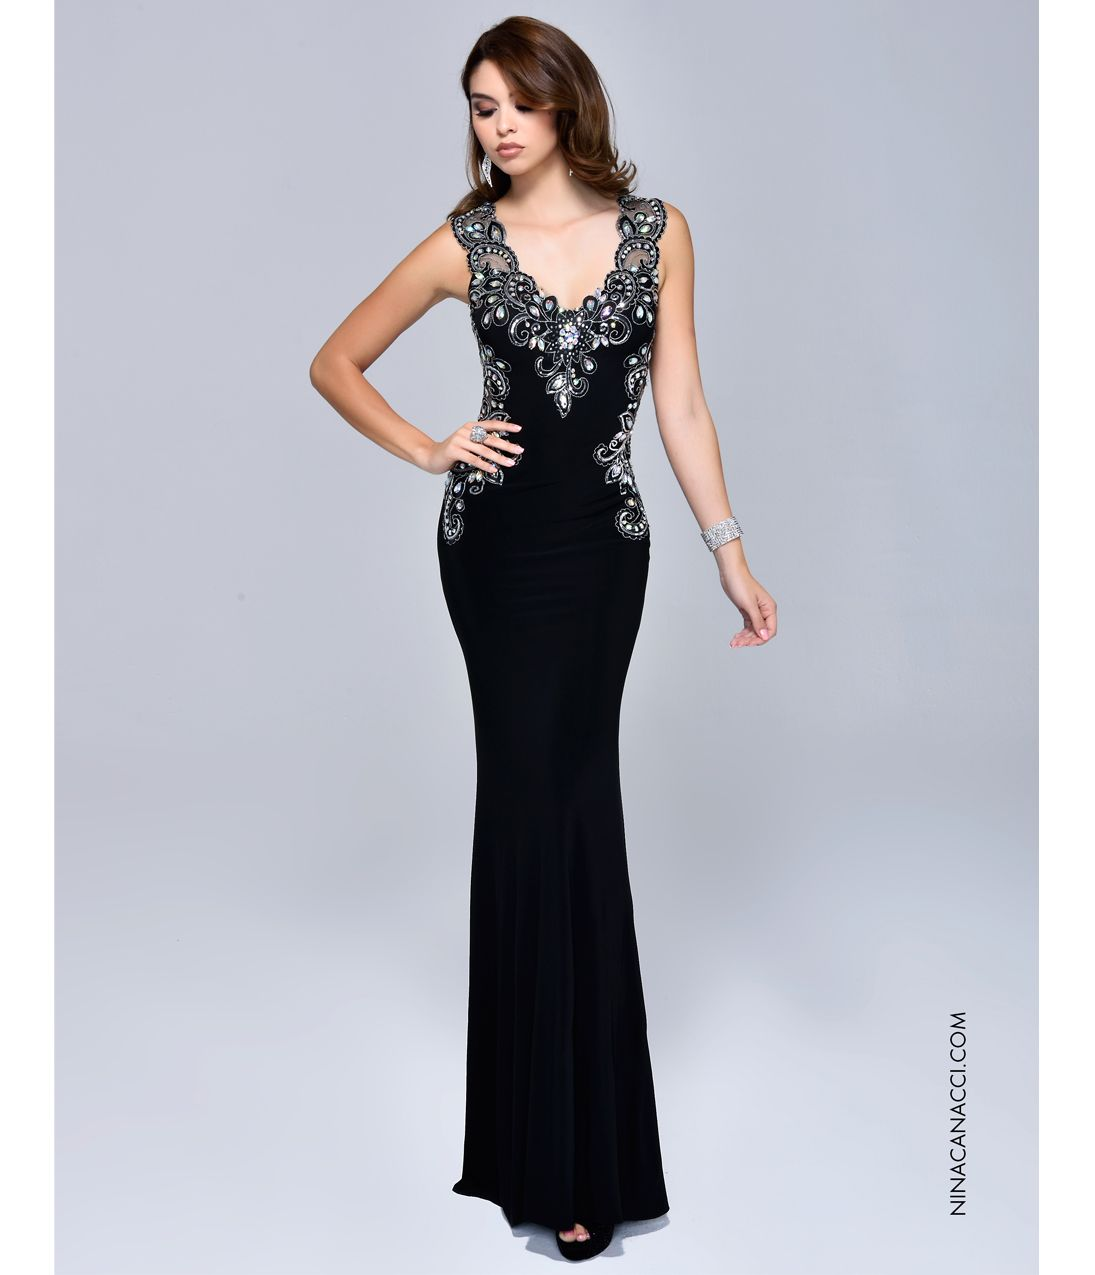 1920s Style Dresses 20s Dresses Great Gatsby Prom Dresses 1920s Fashion Dresses Prom Dresses For Sale [ 1275 x 1095 Pixel ]